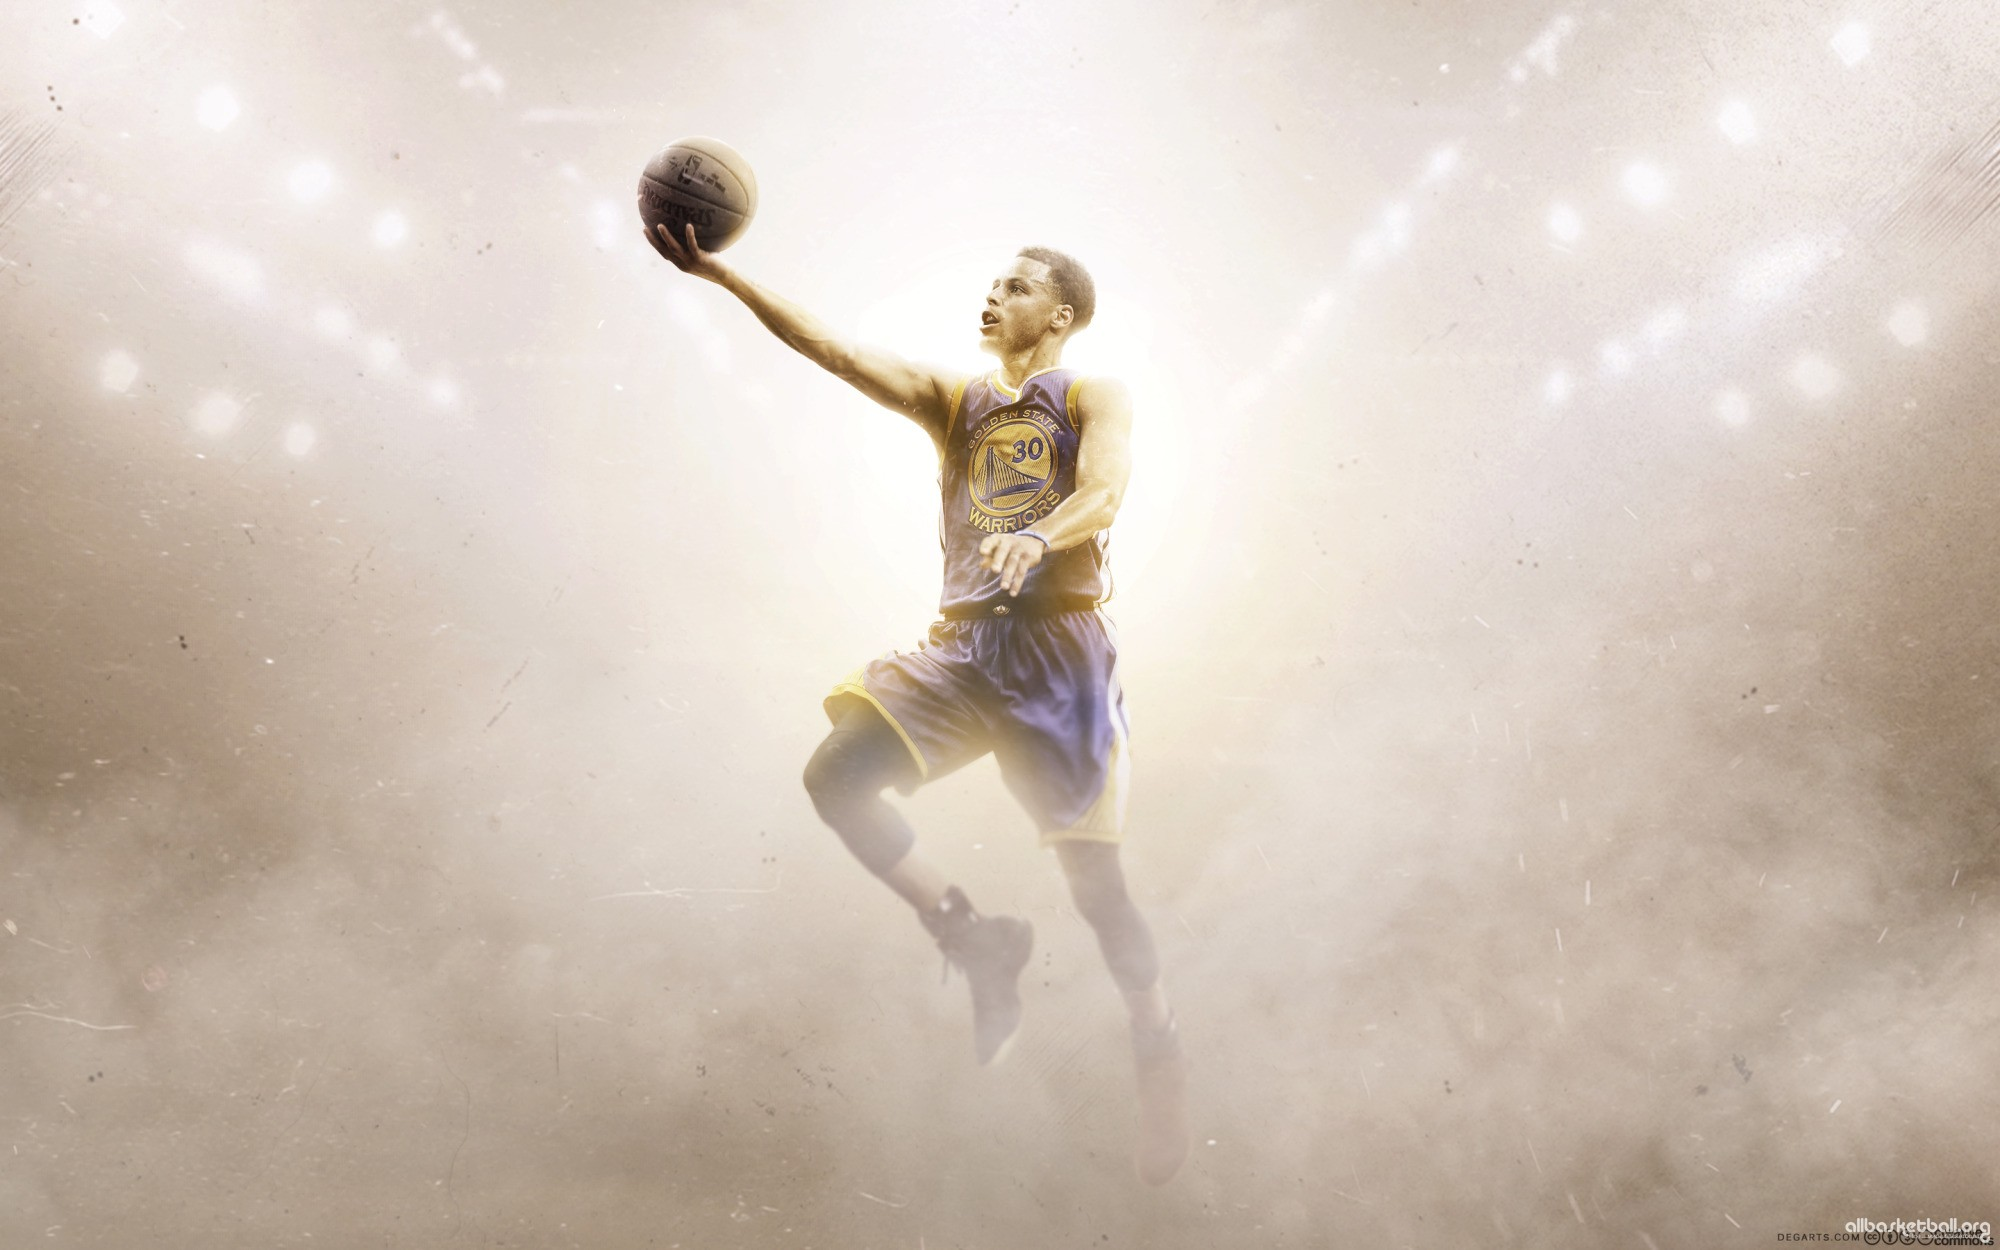 Steph Curry Golden 2015 Wallpaper 2000x1250 2000x1250